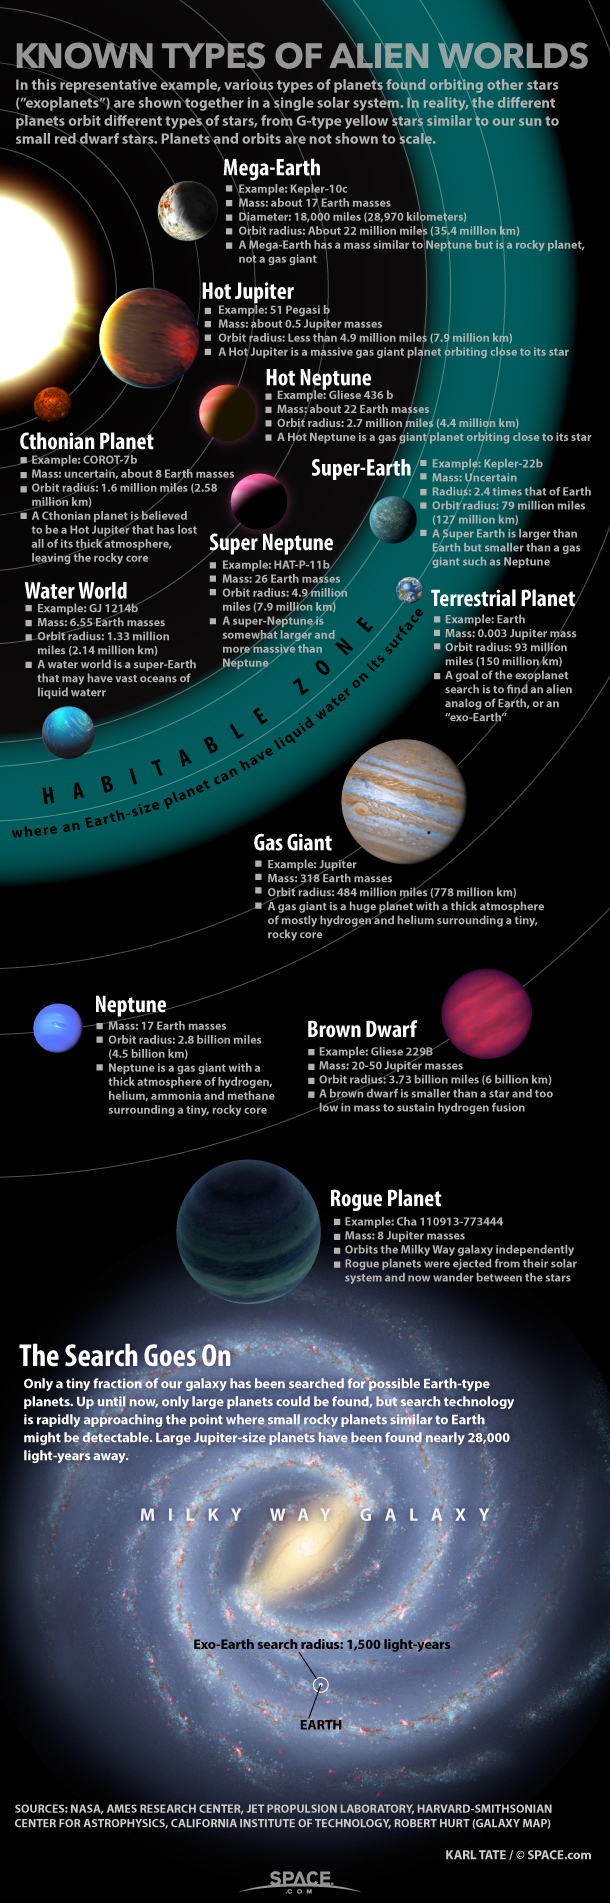 Planets Large and Small Populate Our Galaxy